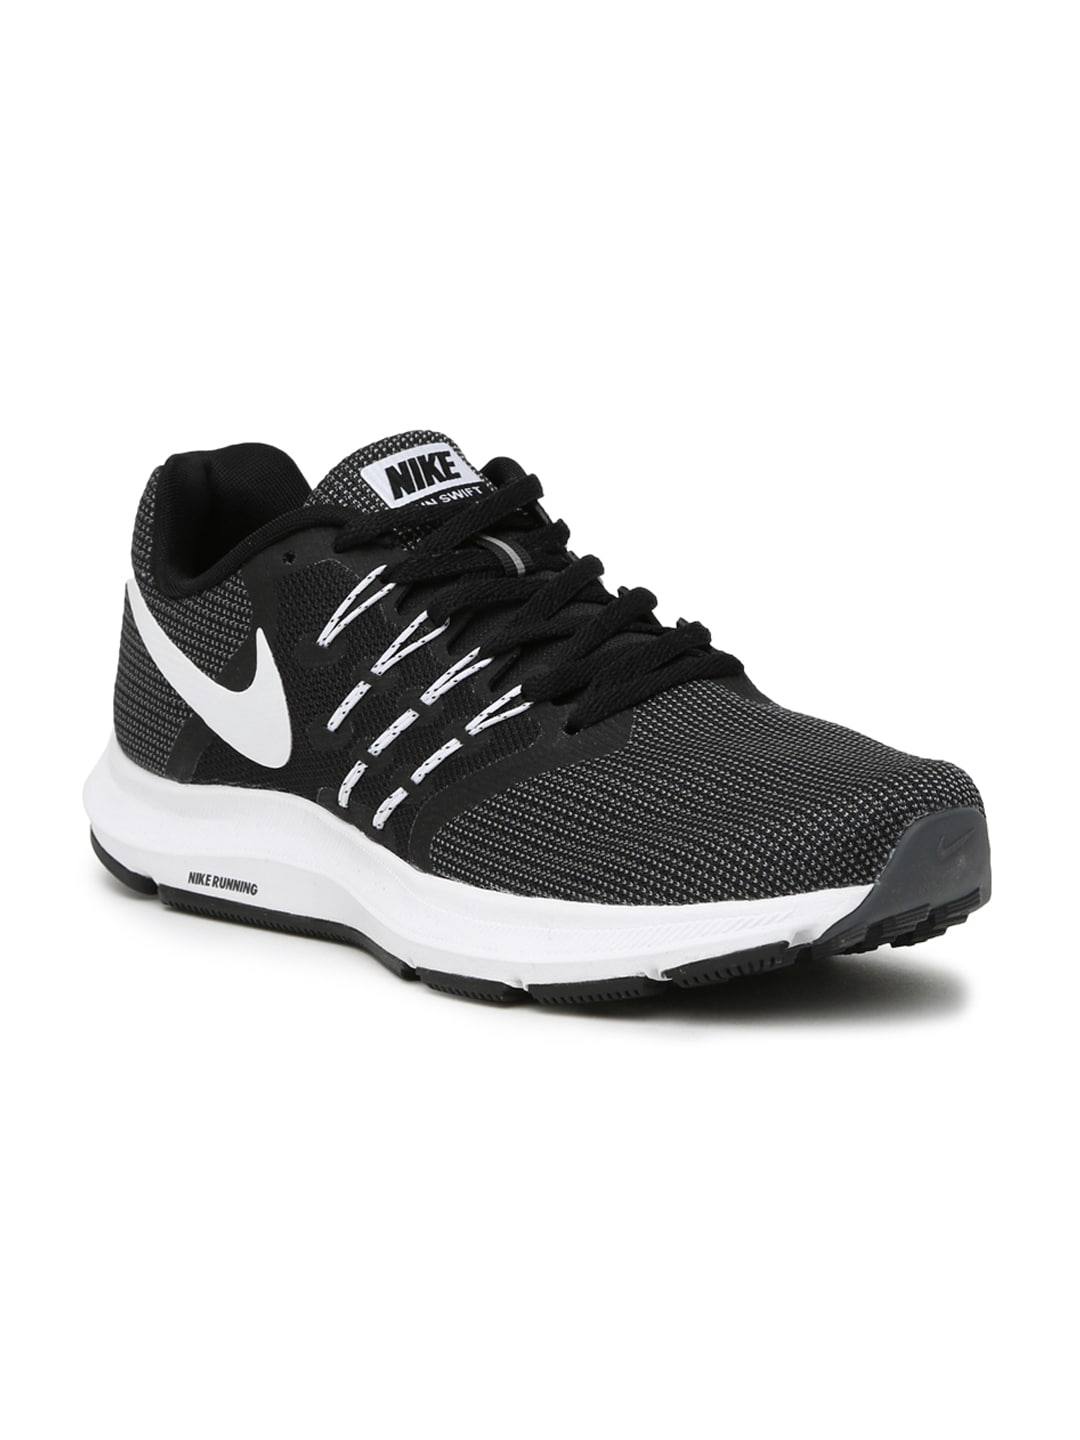 Cheap Nike Sports Shoes Online India